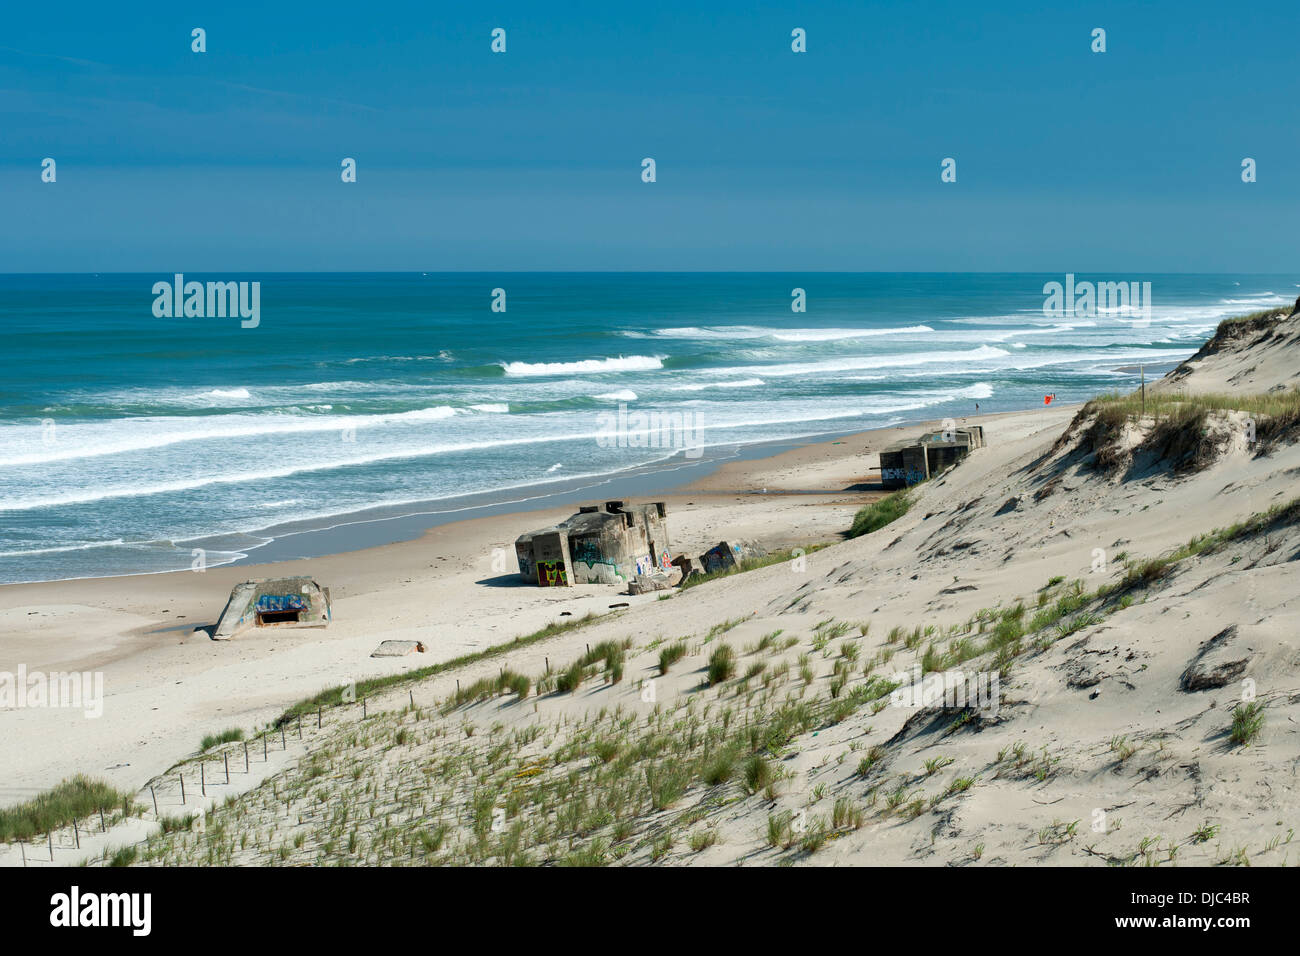 The remains of World War II blockhouses on Le Pin Sec beach in the Aquitaine region of southwestern France. - Stock Image